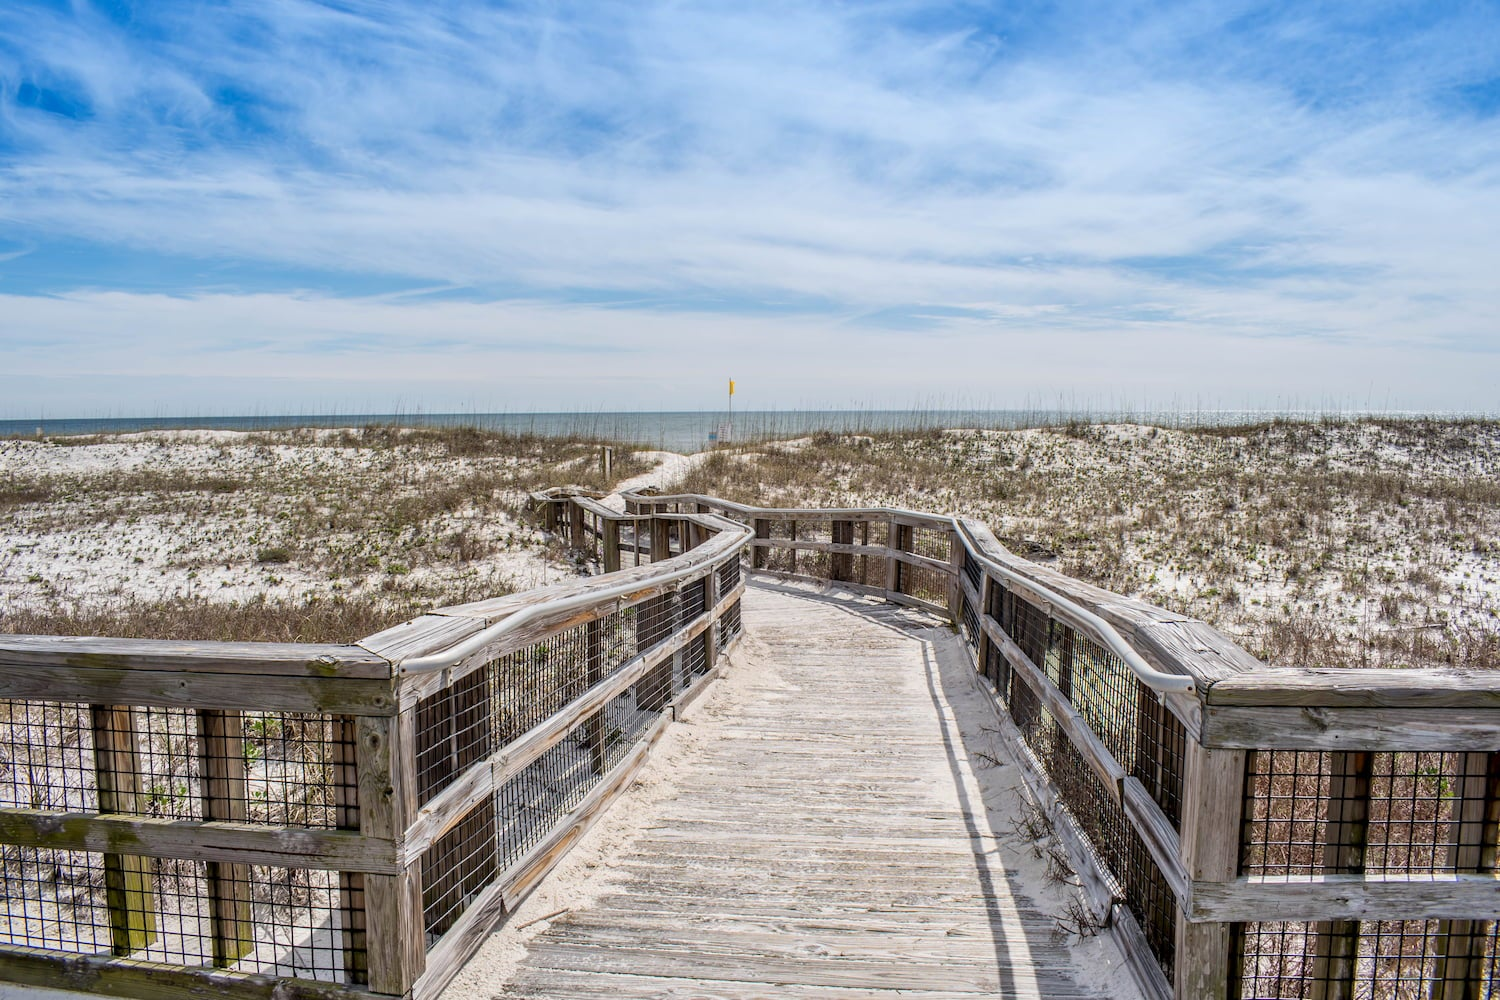 perdido key state park boardwalk